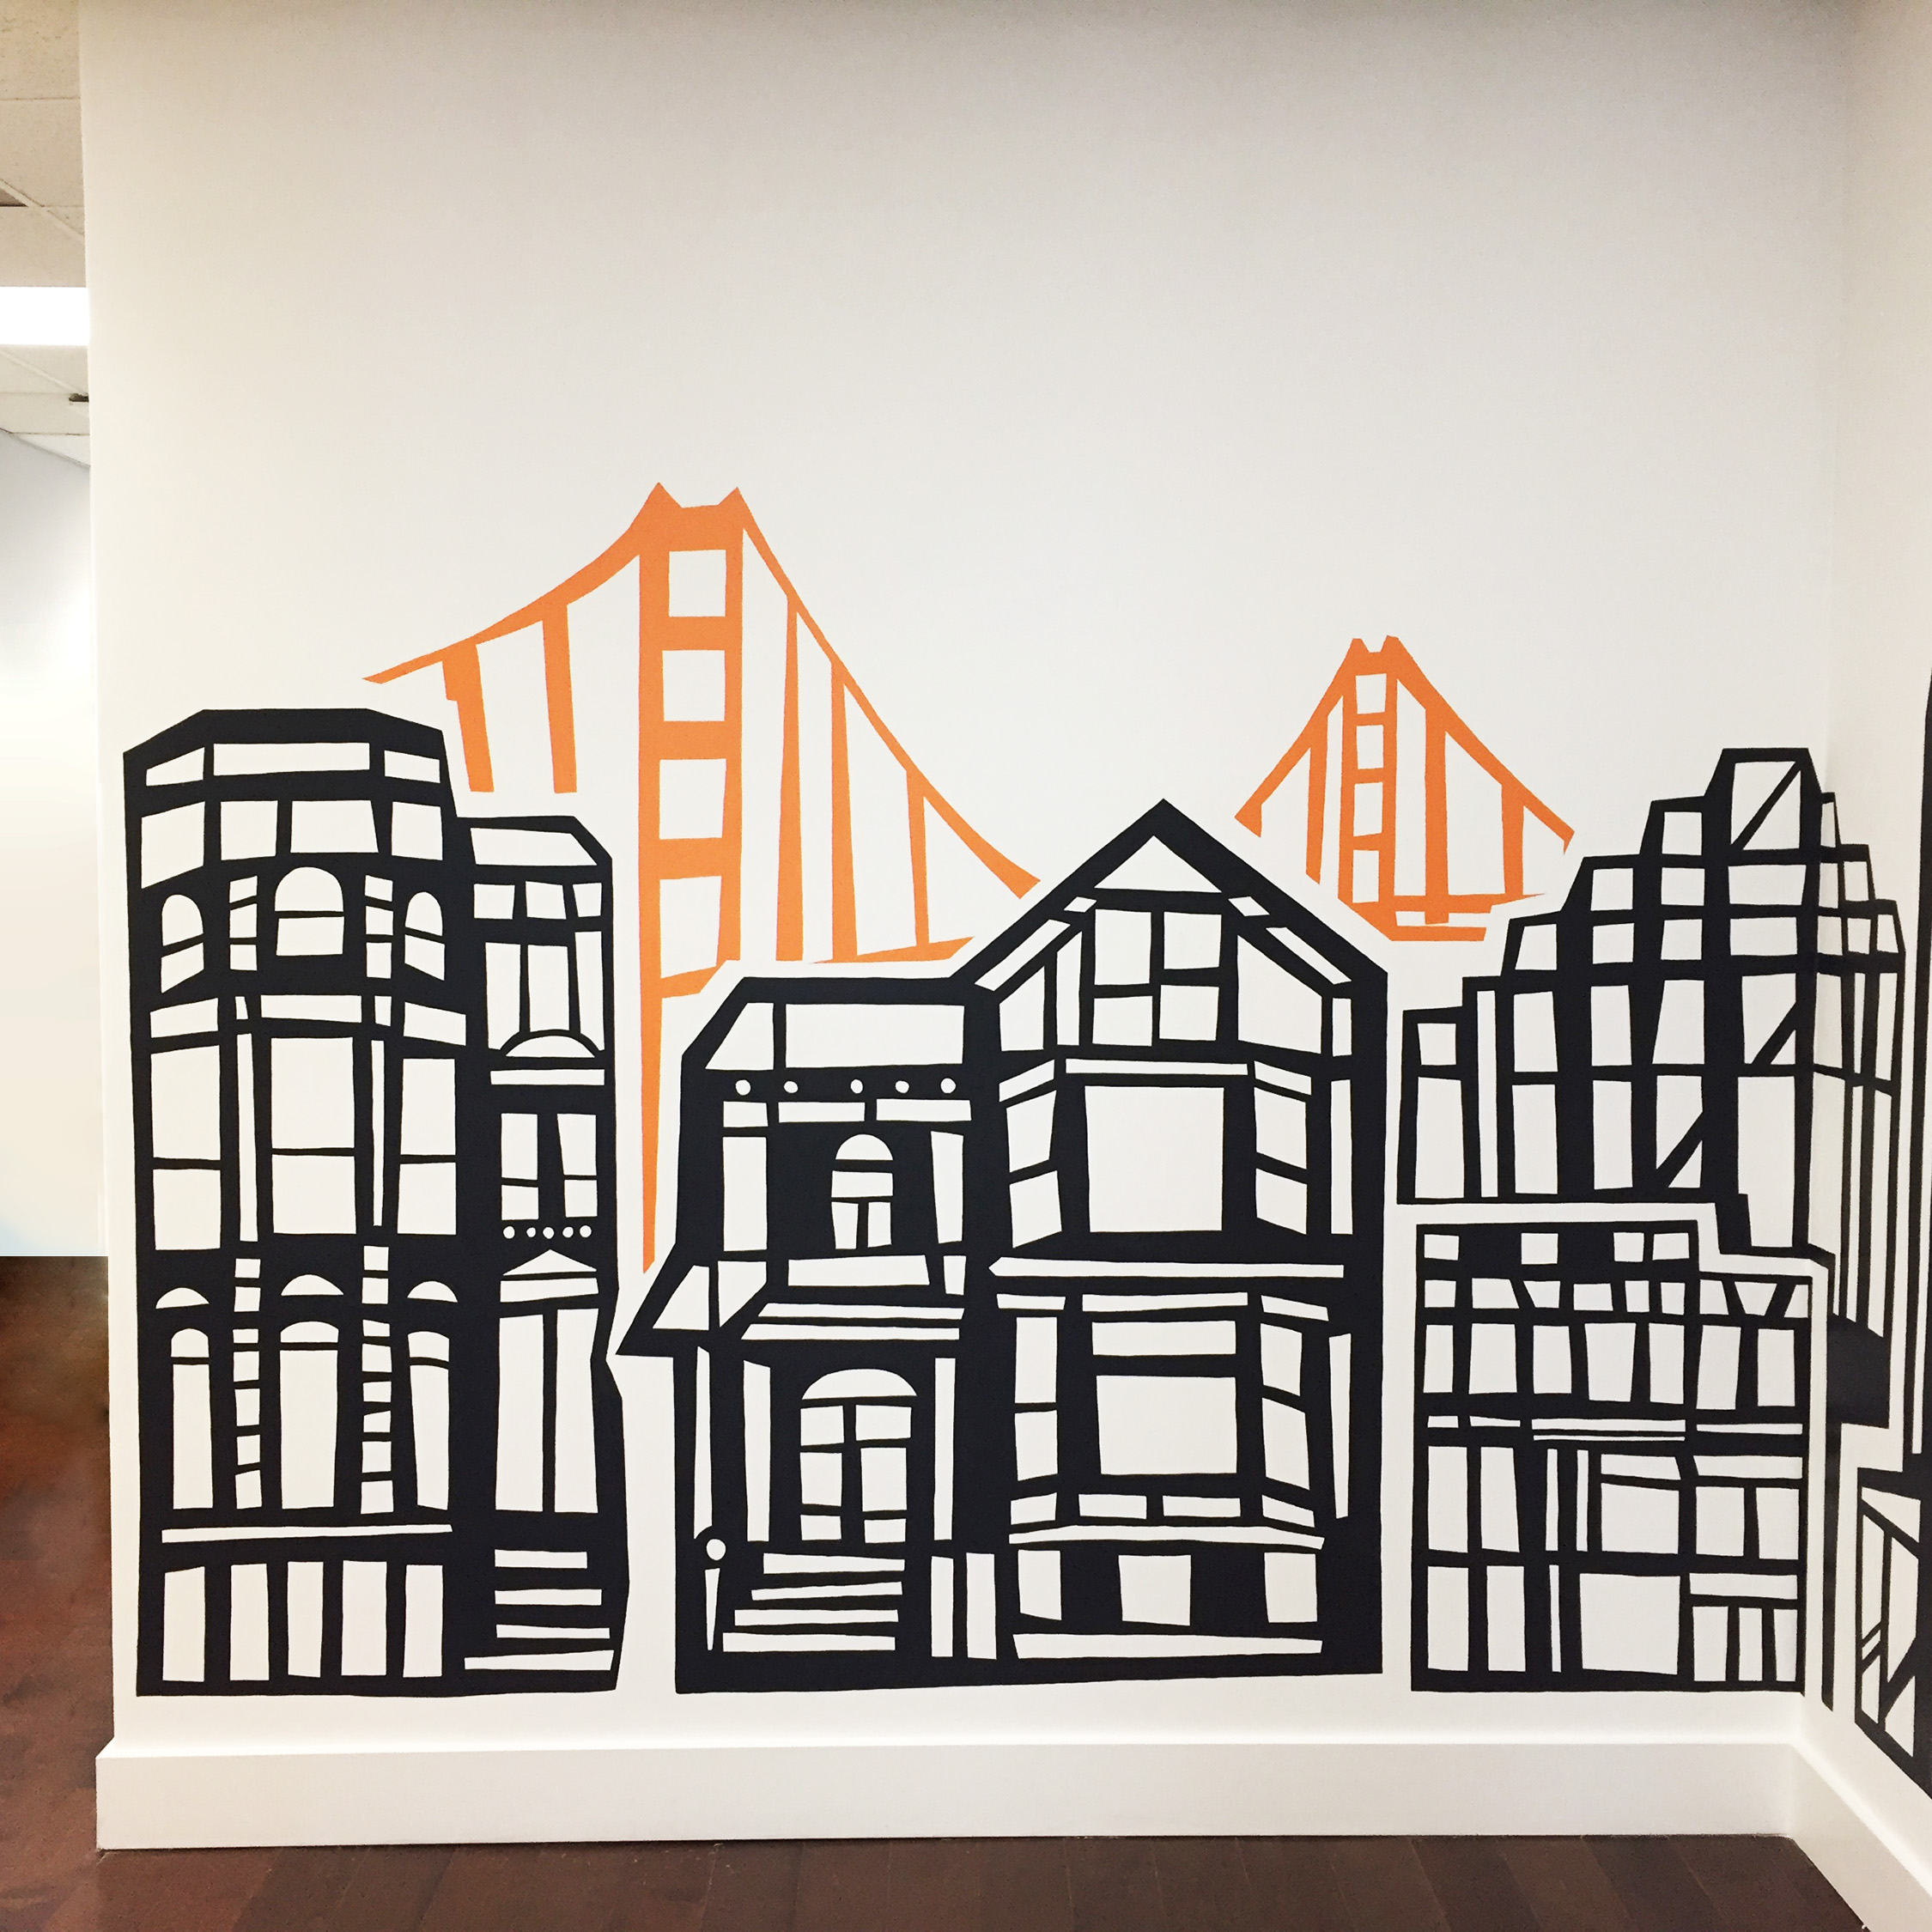 Office-commercial-mural-san-francisco-ballast-wall-and-wall-mural-company_002.jpg